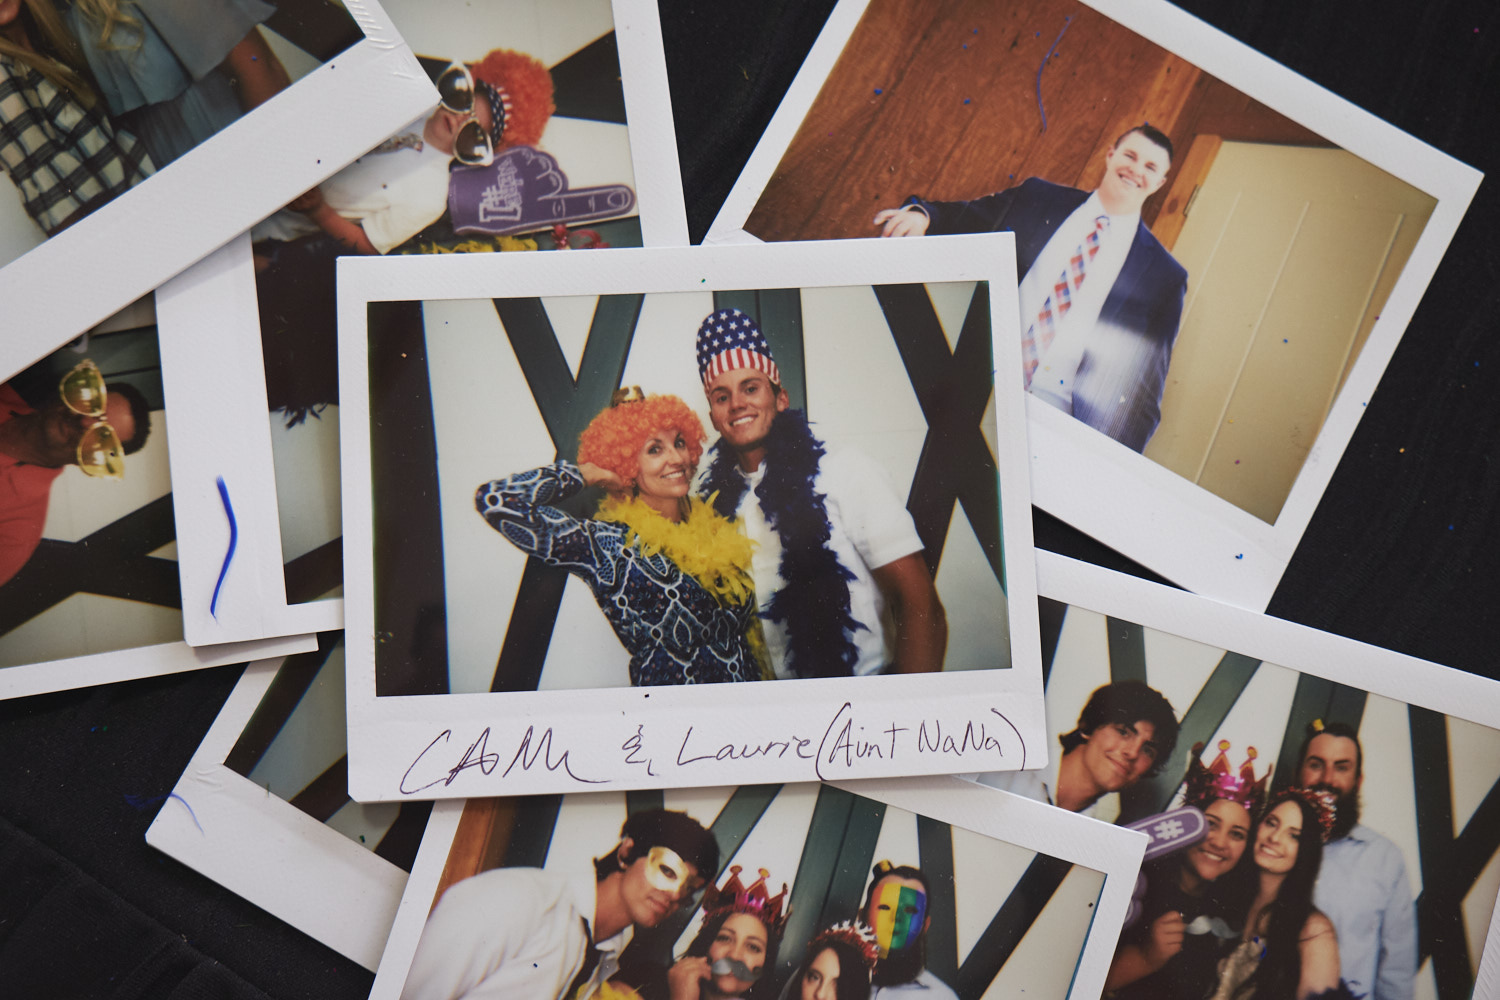 RENT A DIY PHOTO BOOTH KIT — THE INSTANT FILM PHOTO BOOTH